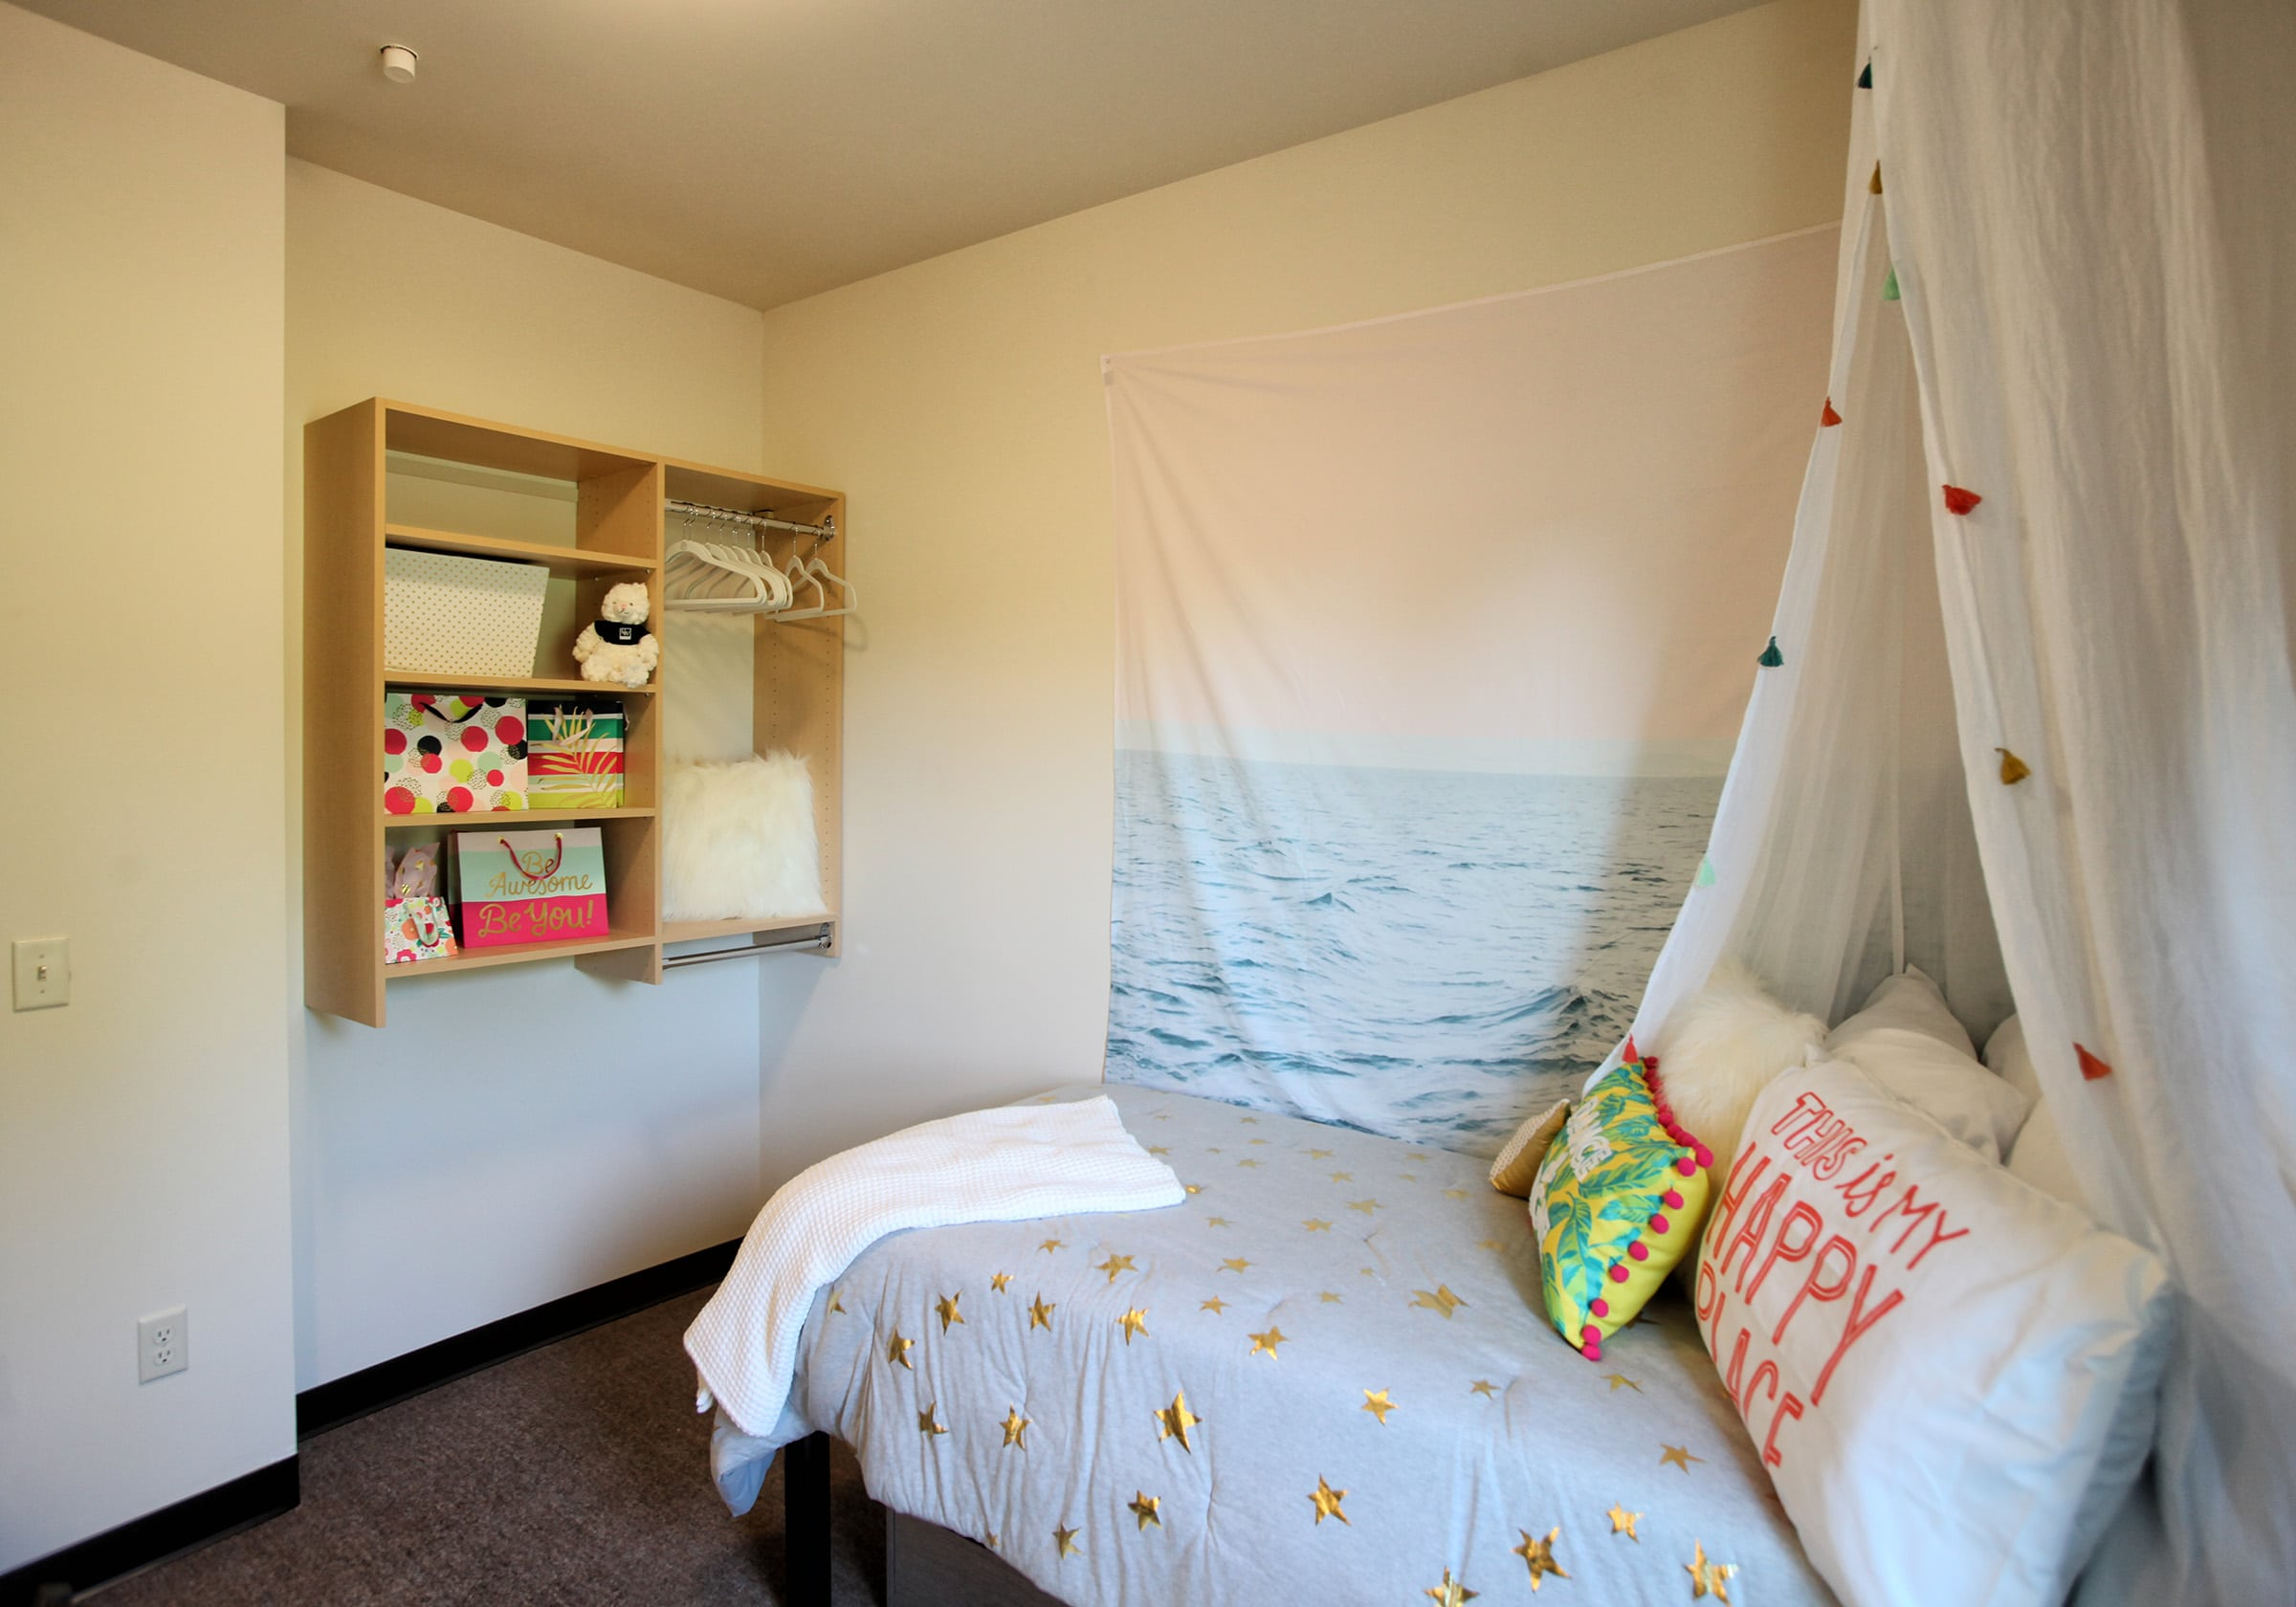 Vue campus bedroom with shelf on wall